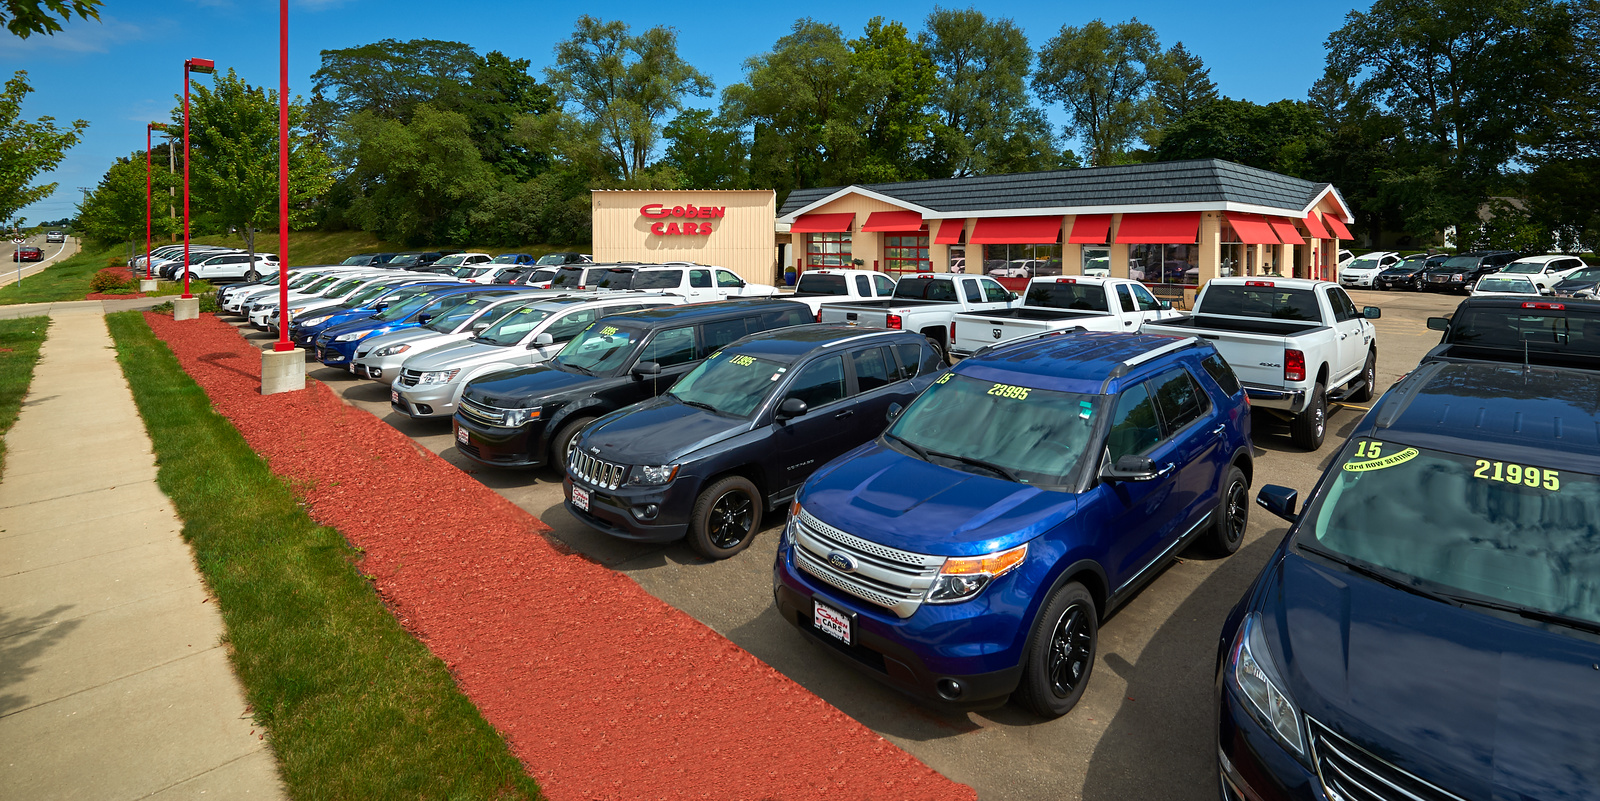 Goben Cars West - Middleton, WI: Read Consumer reviews, Browse Used and New Cars for Sale